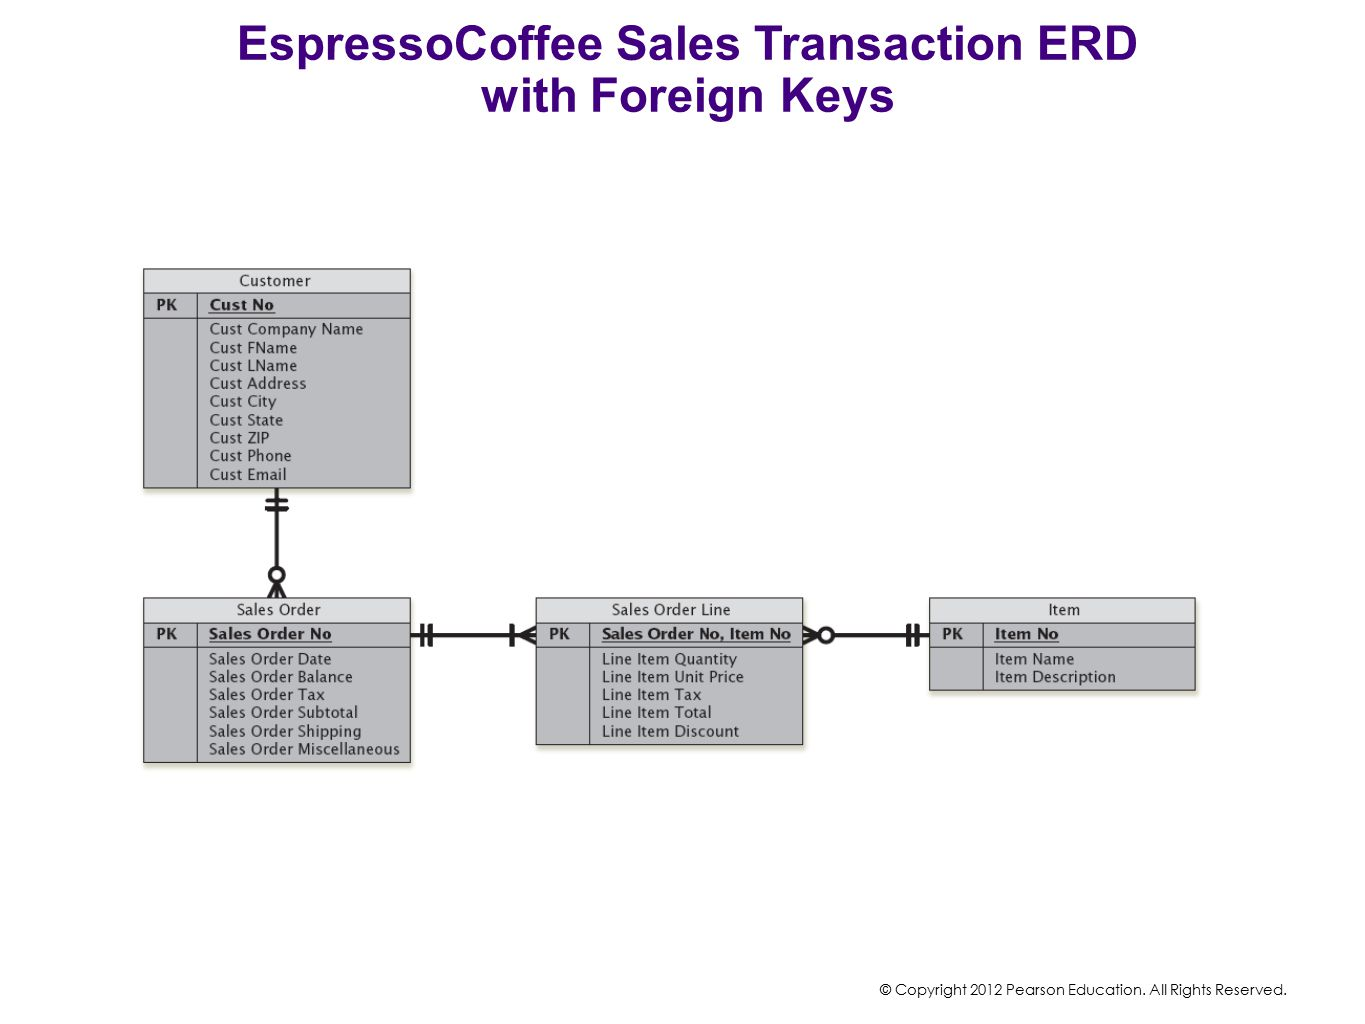 EspressoCoffee Sales Transaction ERD with Foreign Keys